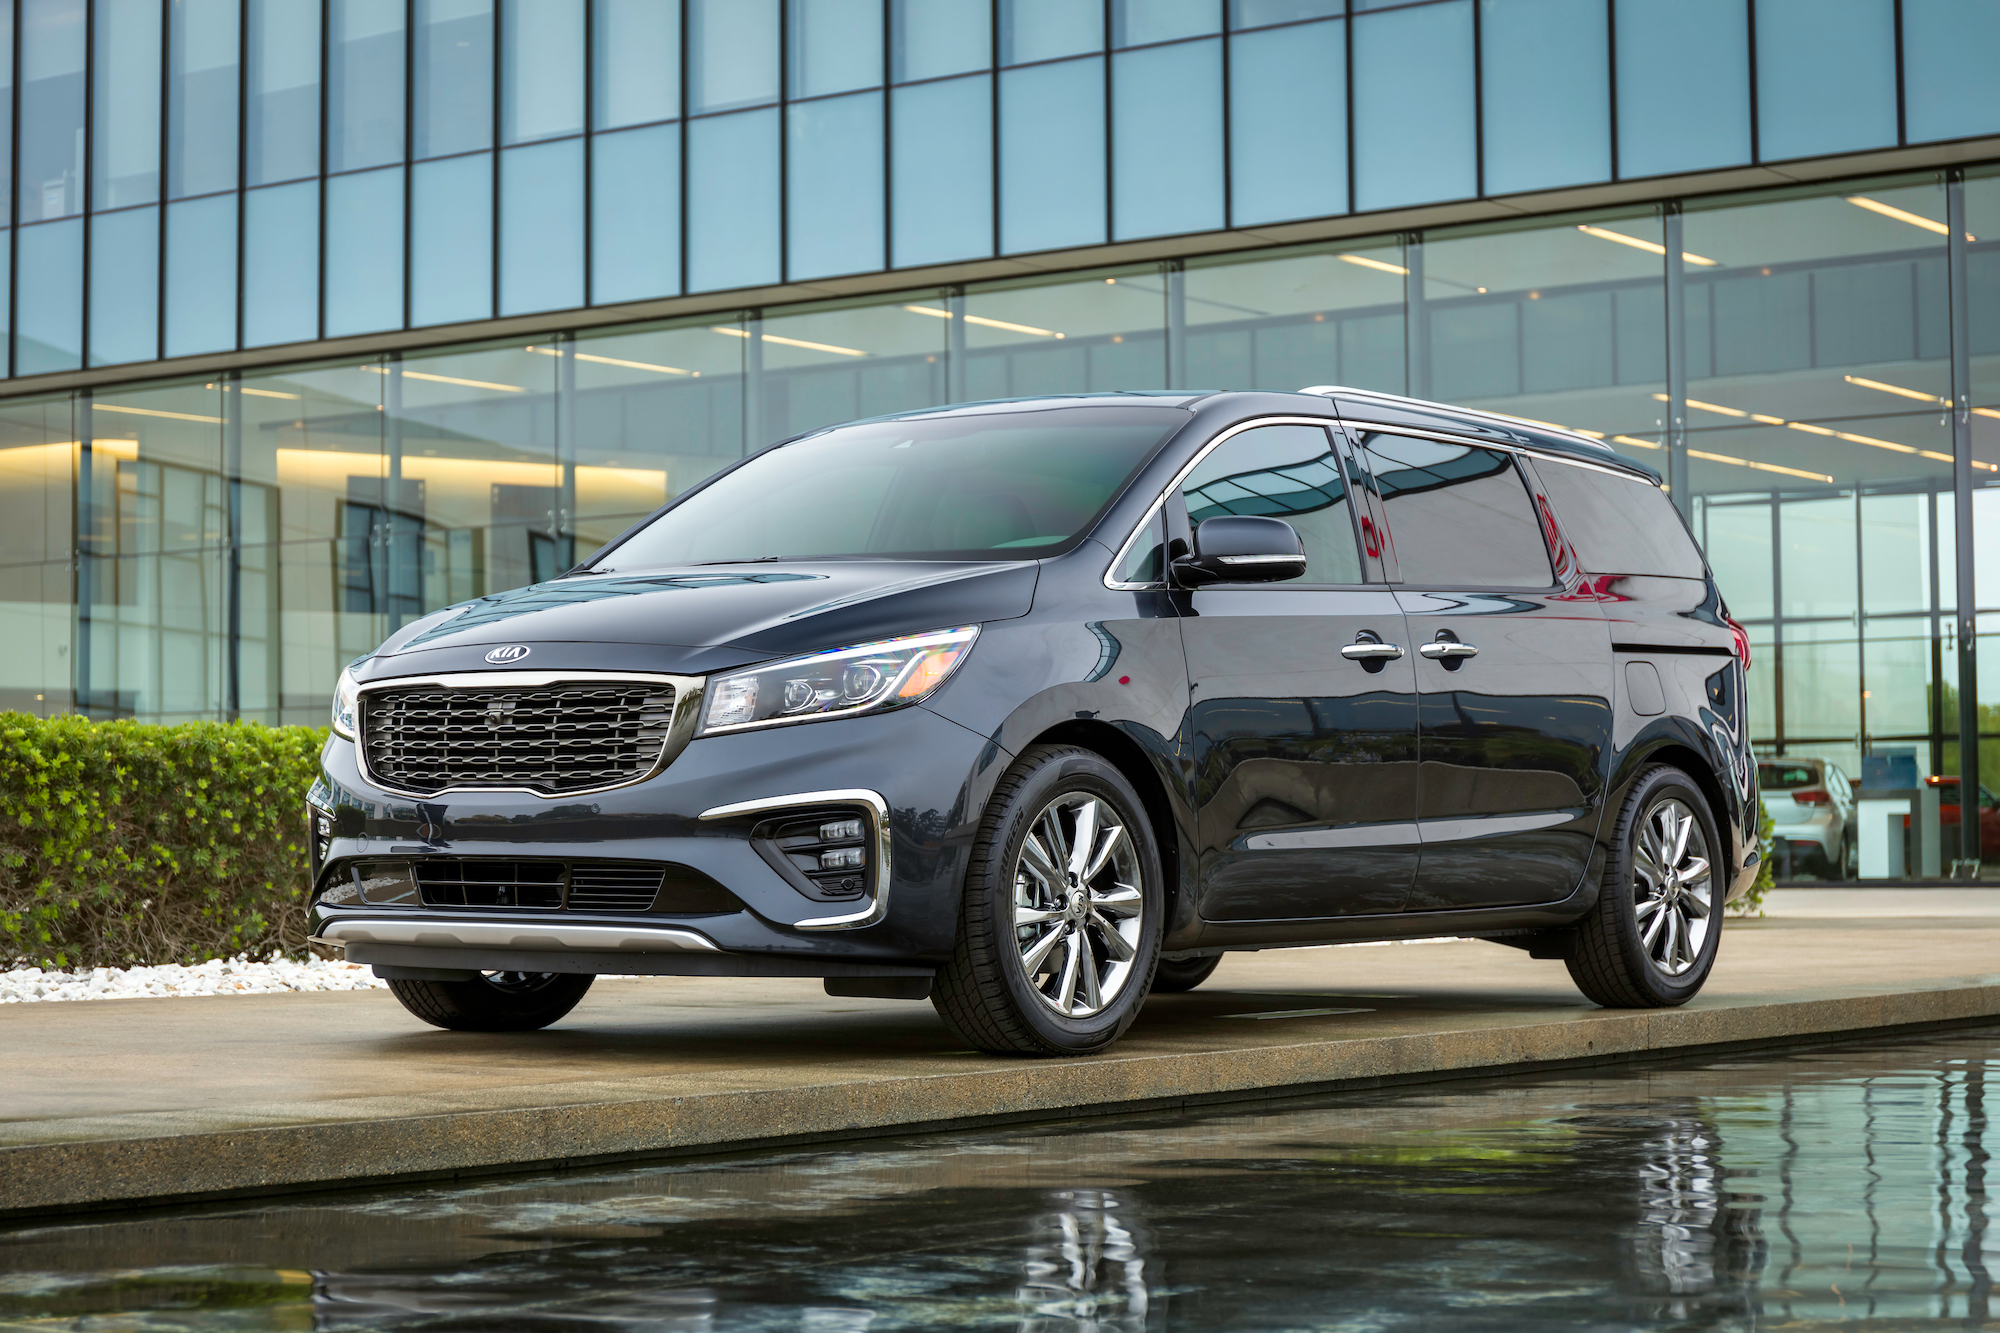 Image result for 2020 kia sedona sx thecarconnection